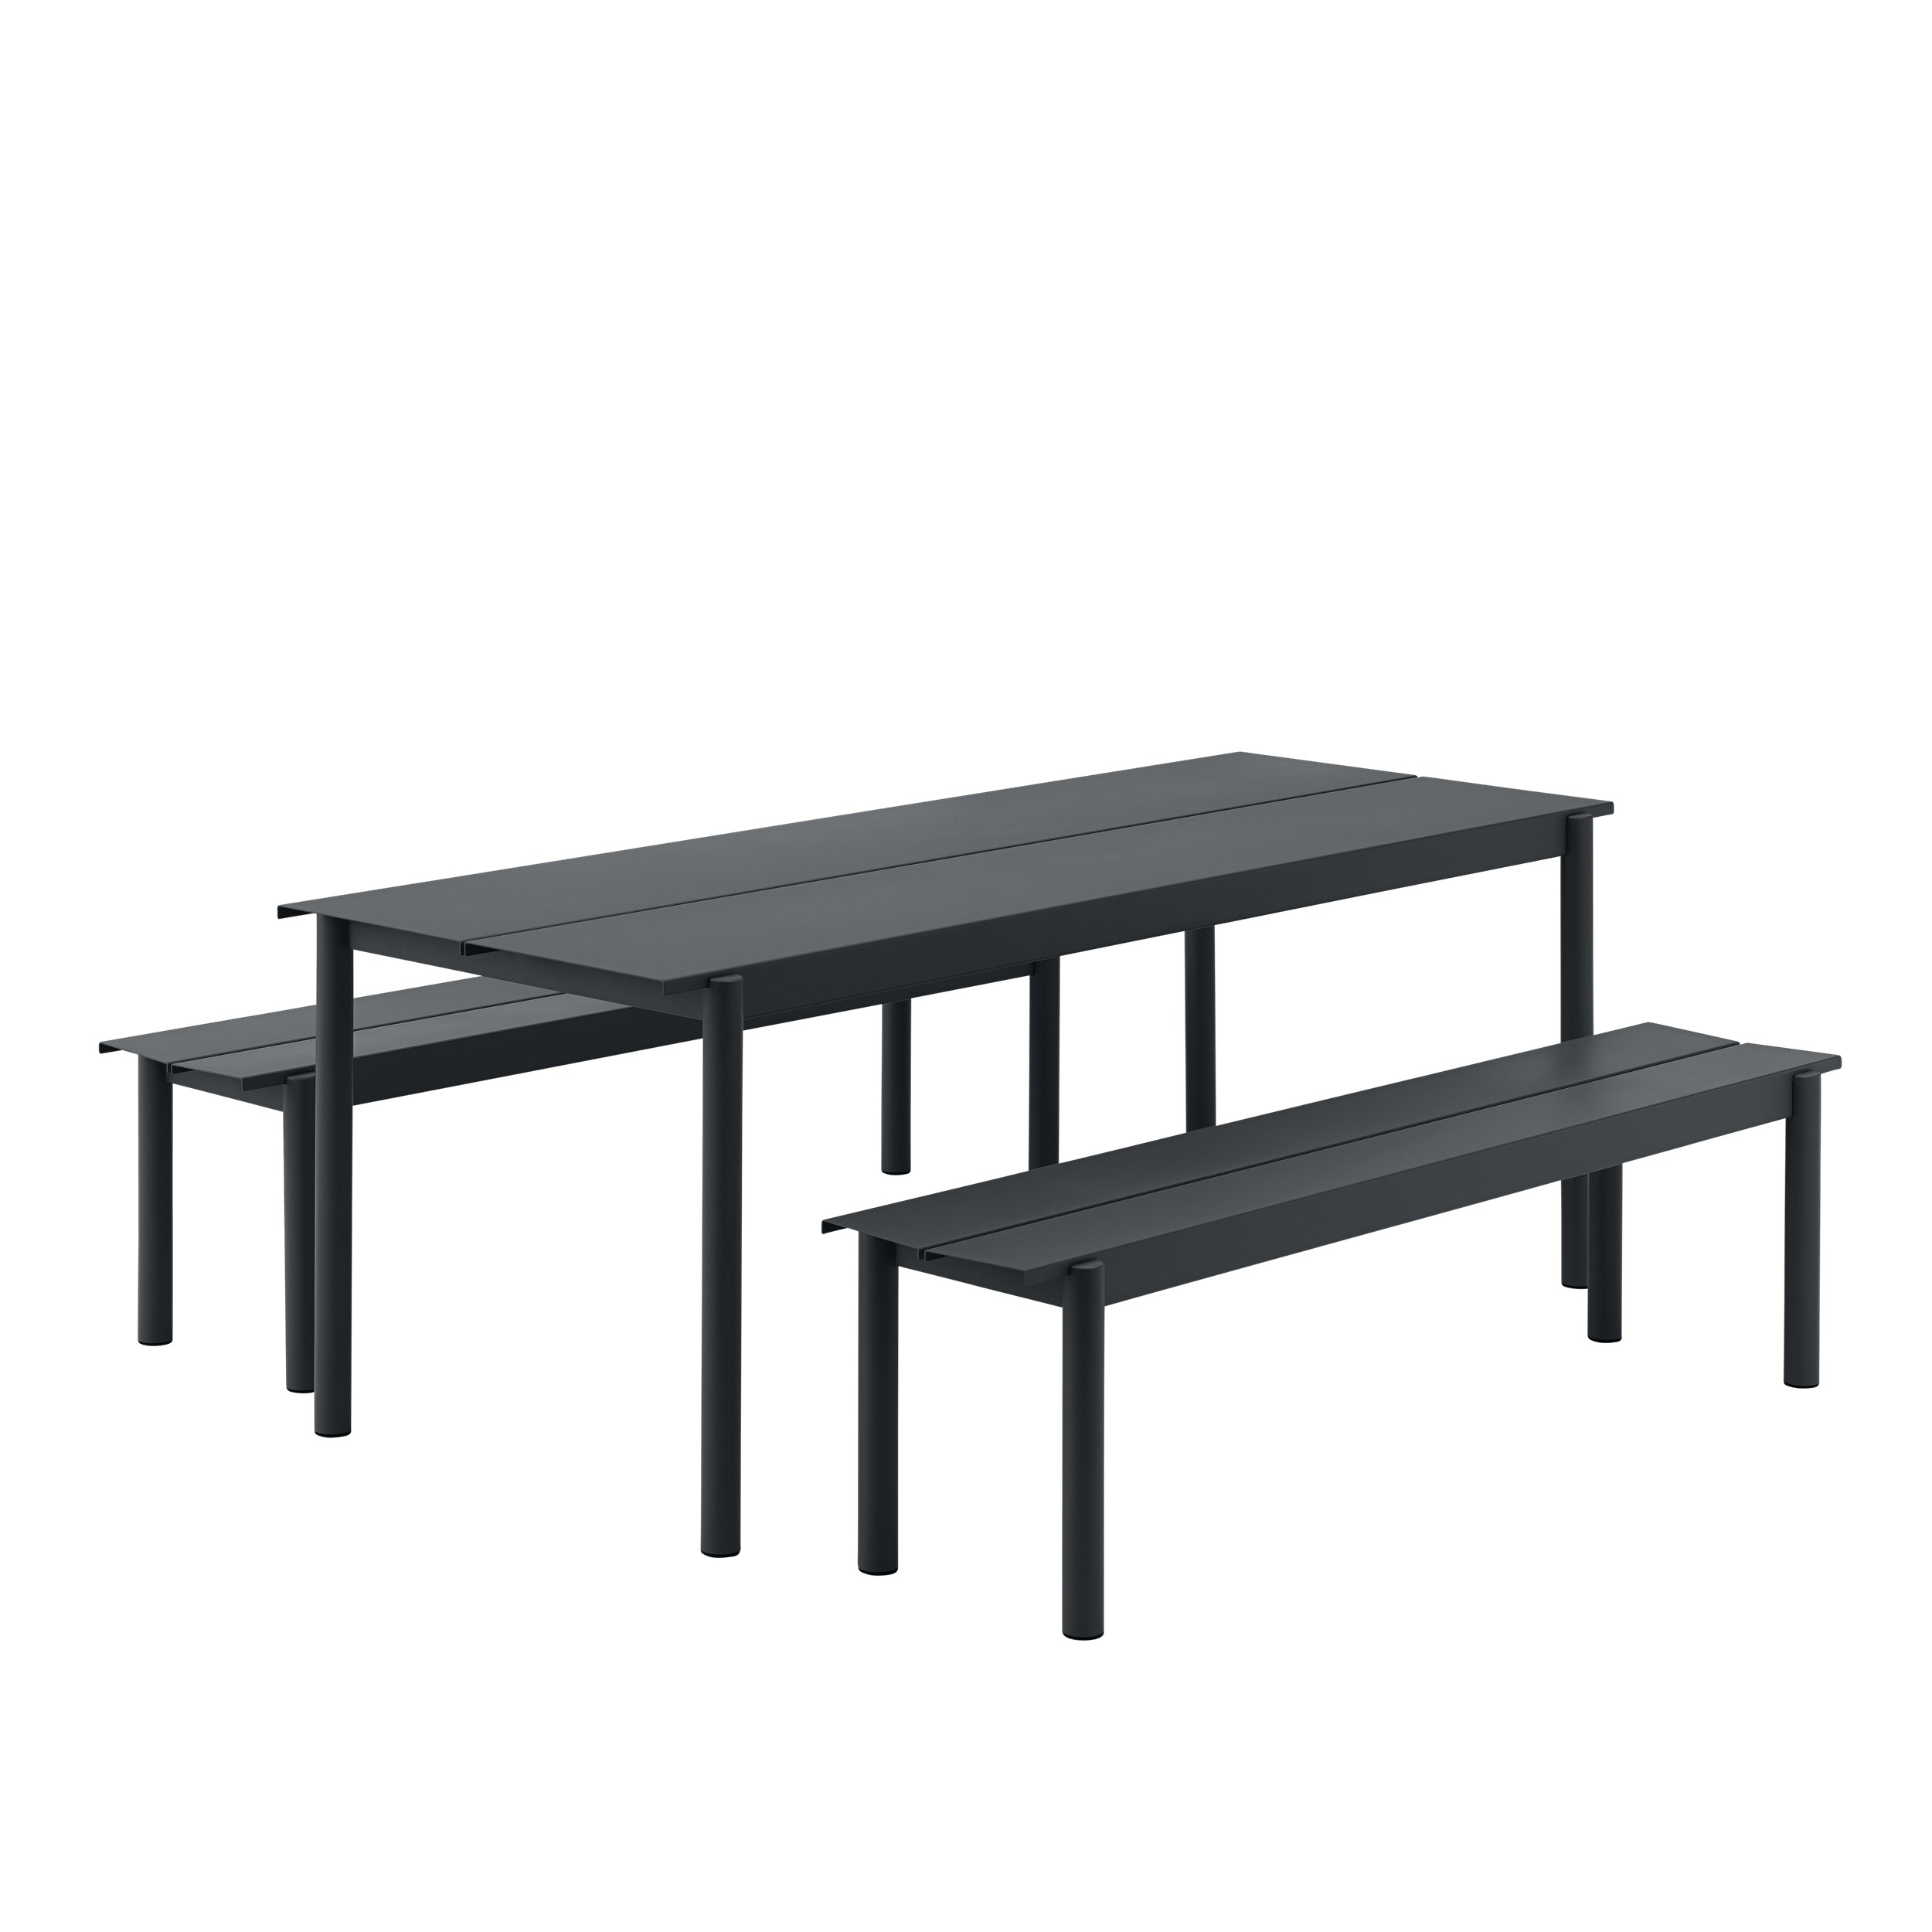 Muuto Linear Steel Table 140 Black